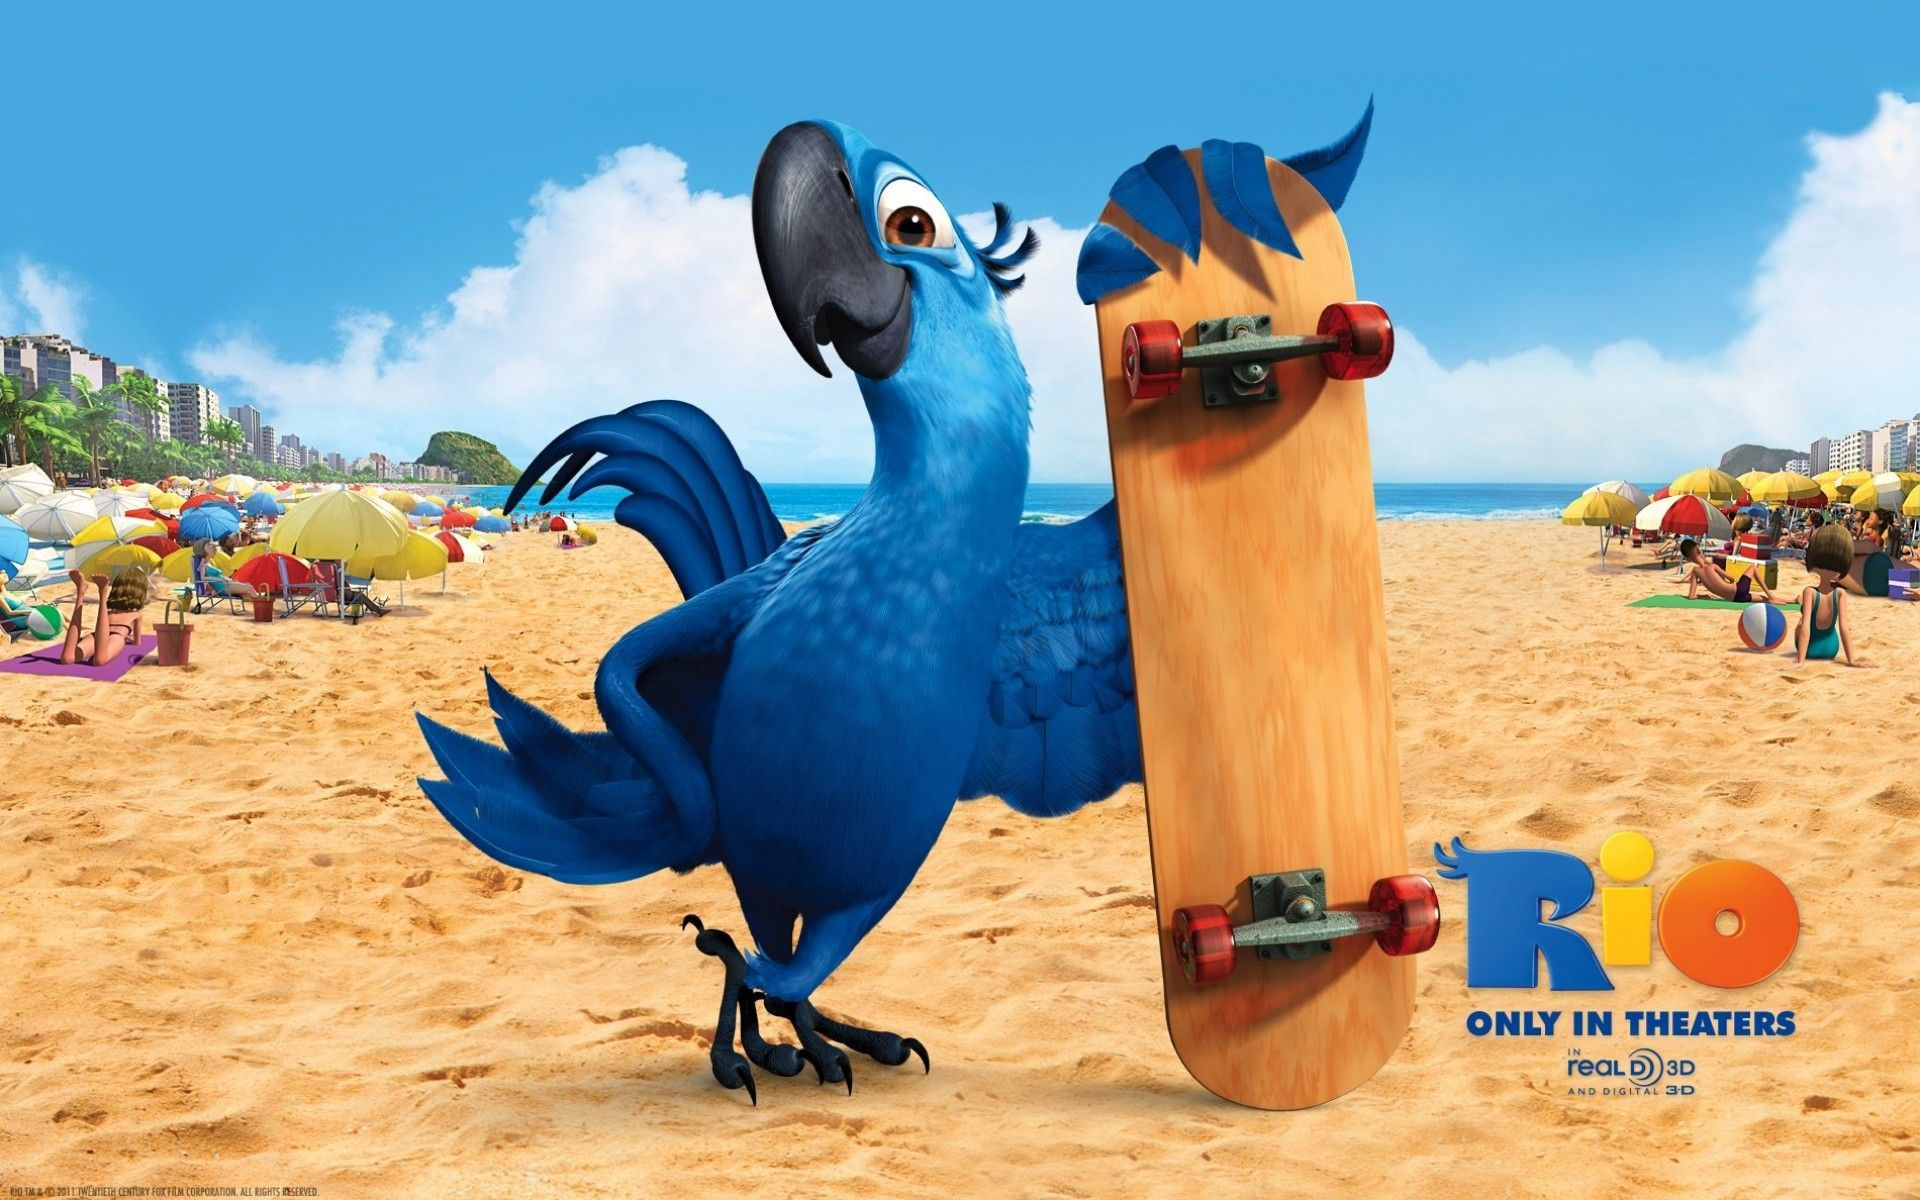 rio 2 wallpaper hd movie for pc computer | movies/tv shows